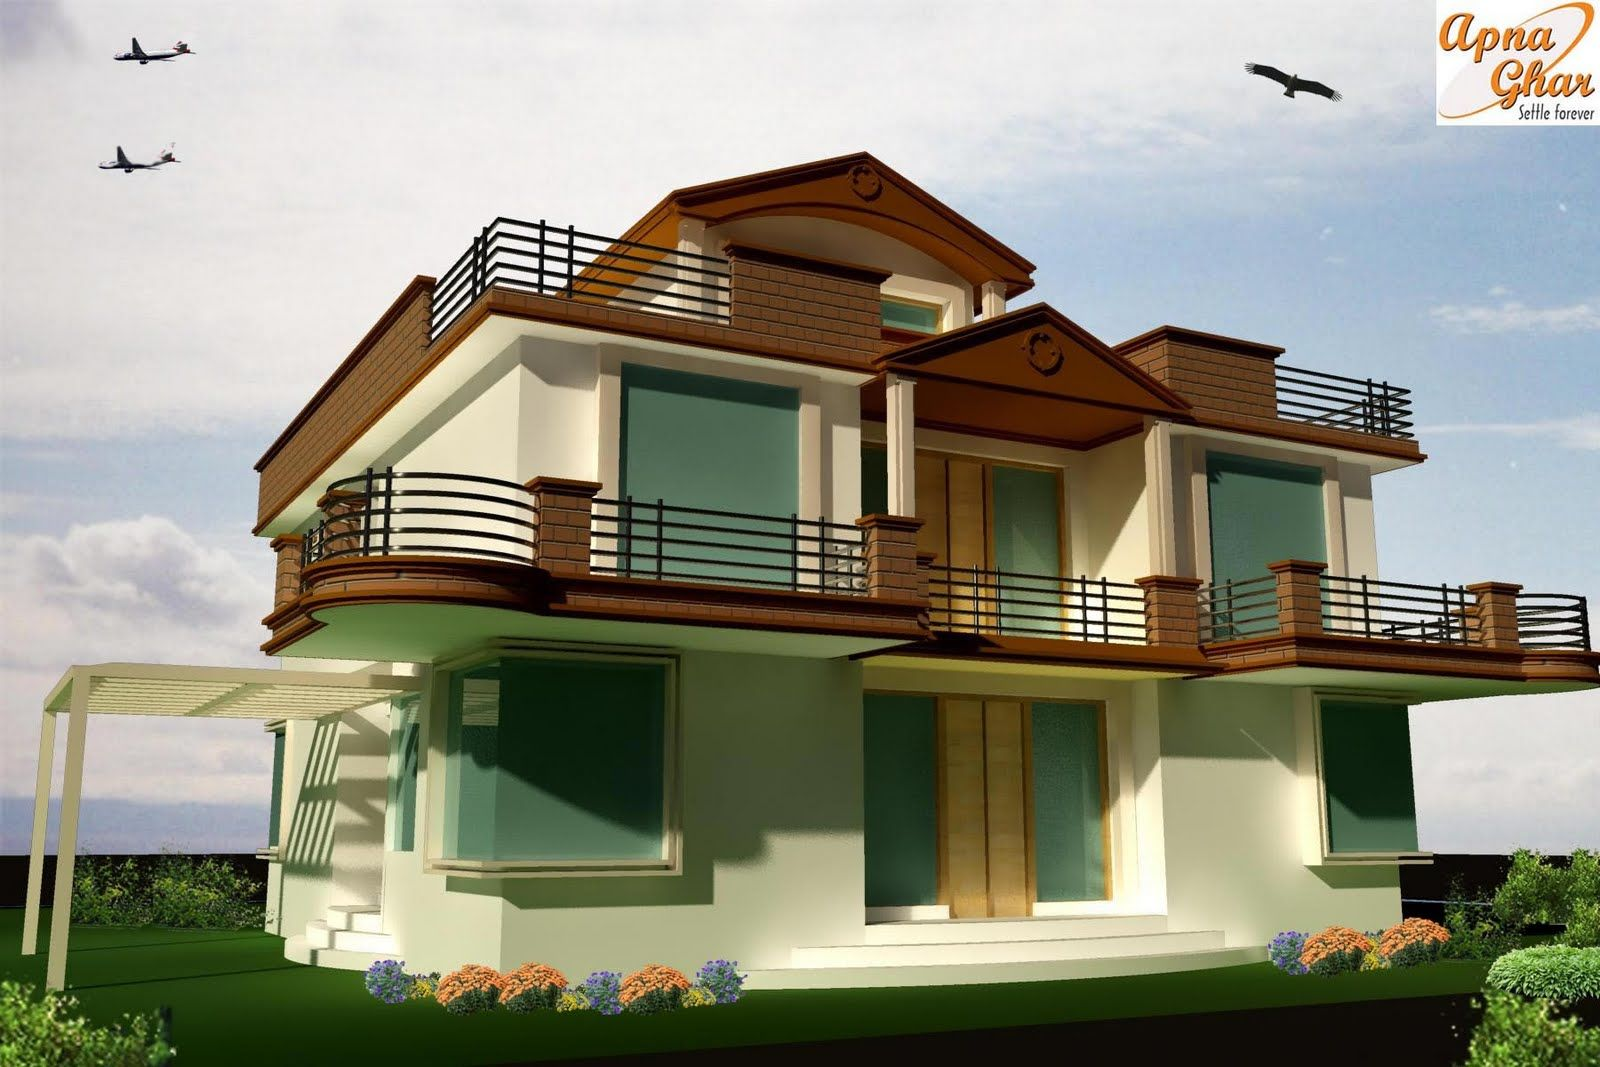 Architectural designs modern architectural house plans for Latest architectural house designs